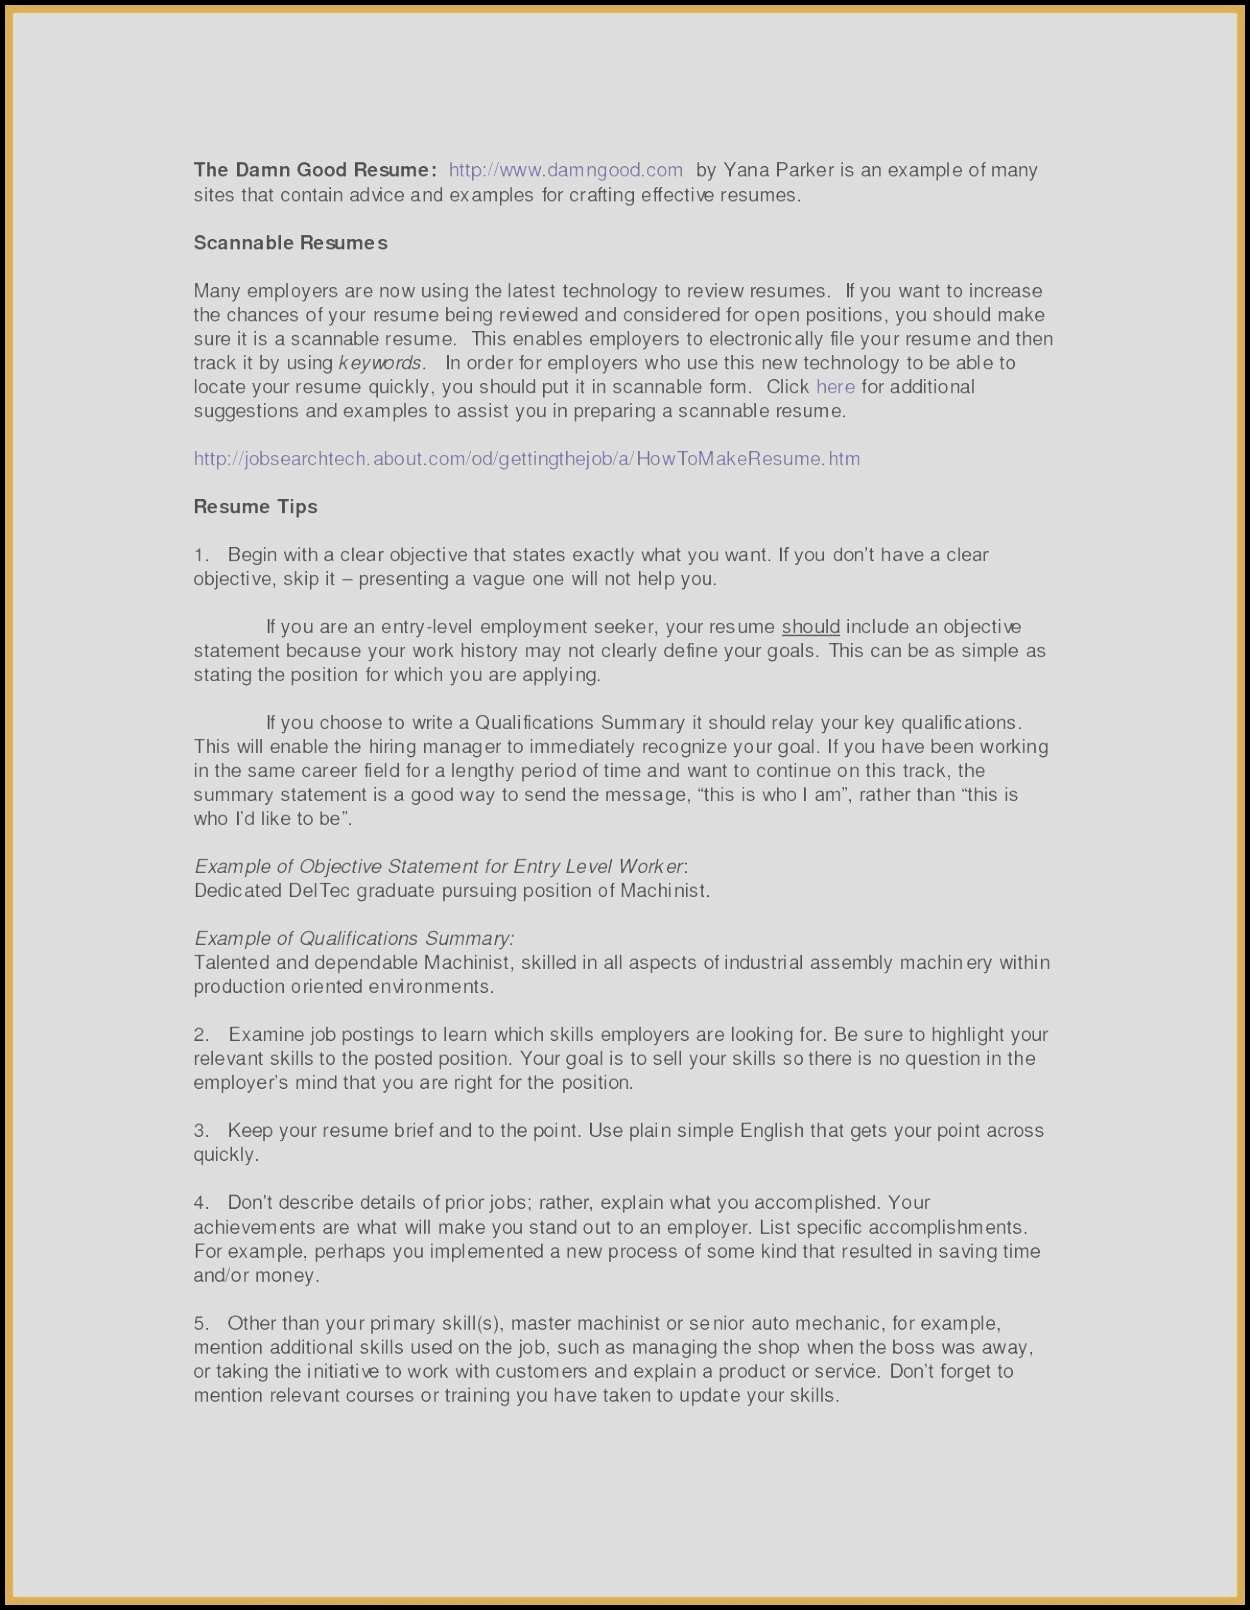 Resume Titles Examples that Stand Out - 19 How to Make My Resume Stand Out